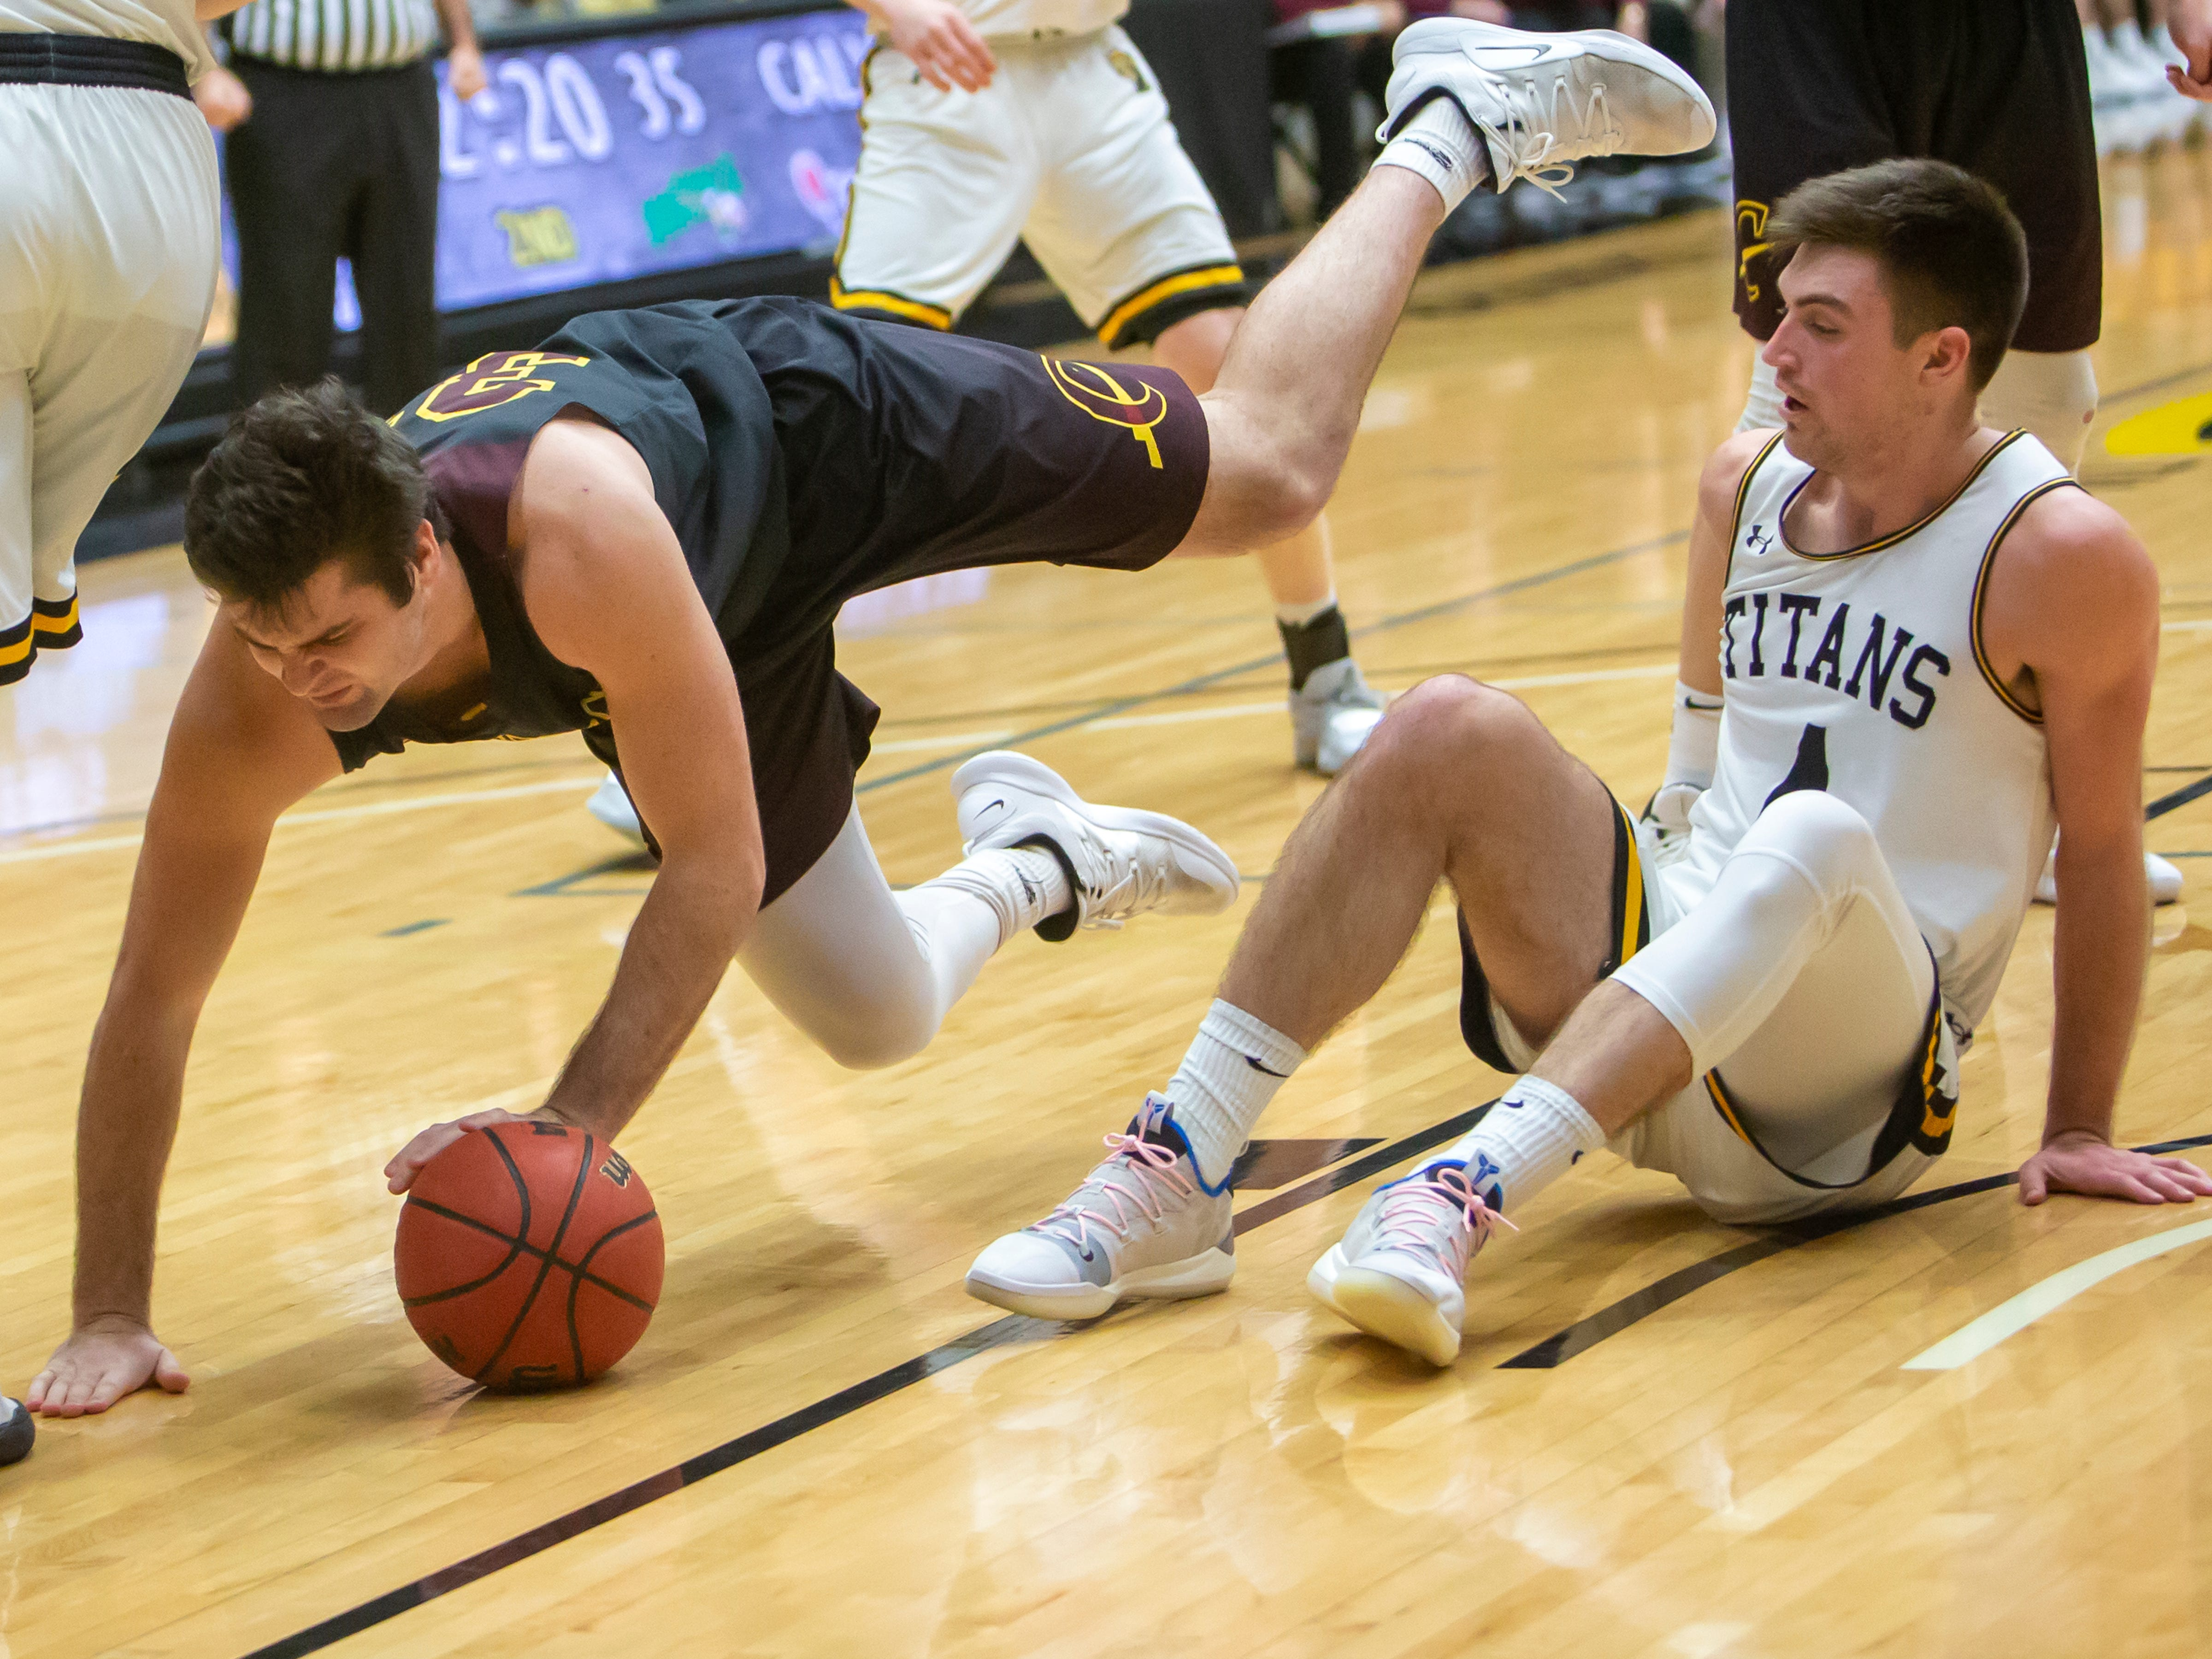 Calvin's Derrick DeVries falls during a play on the court at the Kolf Sports Center on Saturday, December 8, 2018.